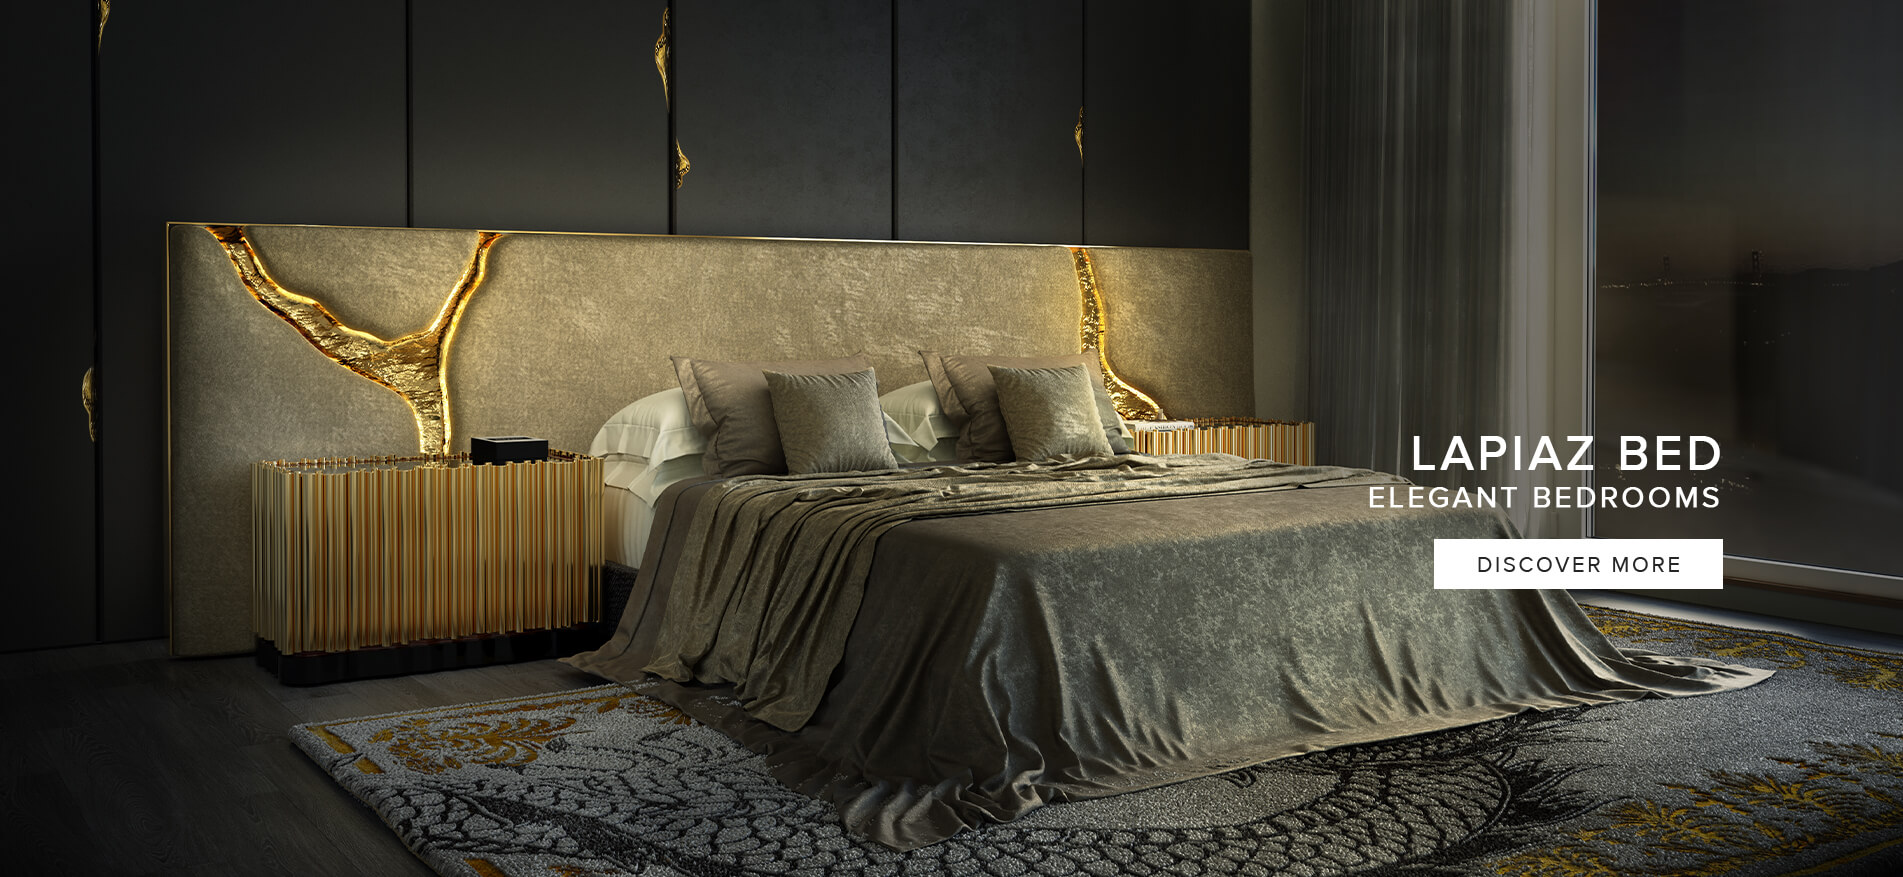 Lapiaz Bed - Discover More